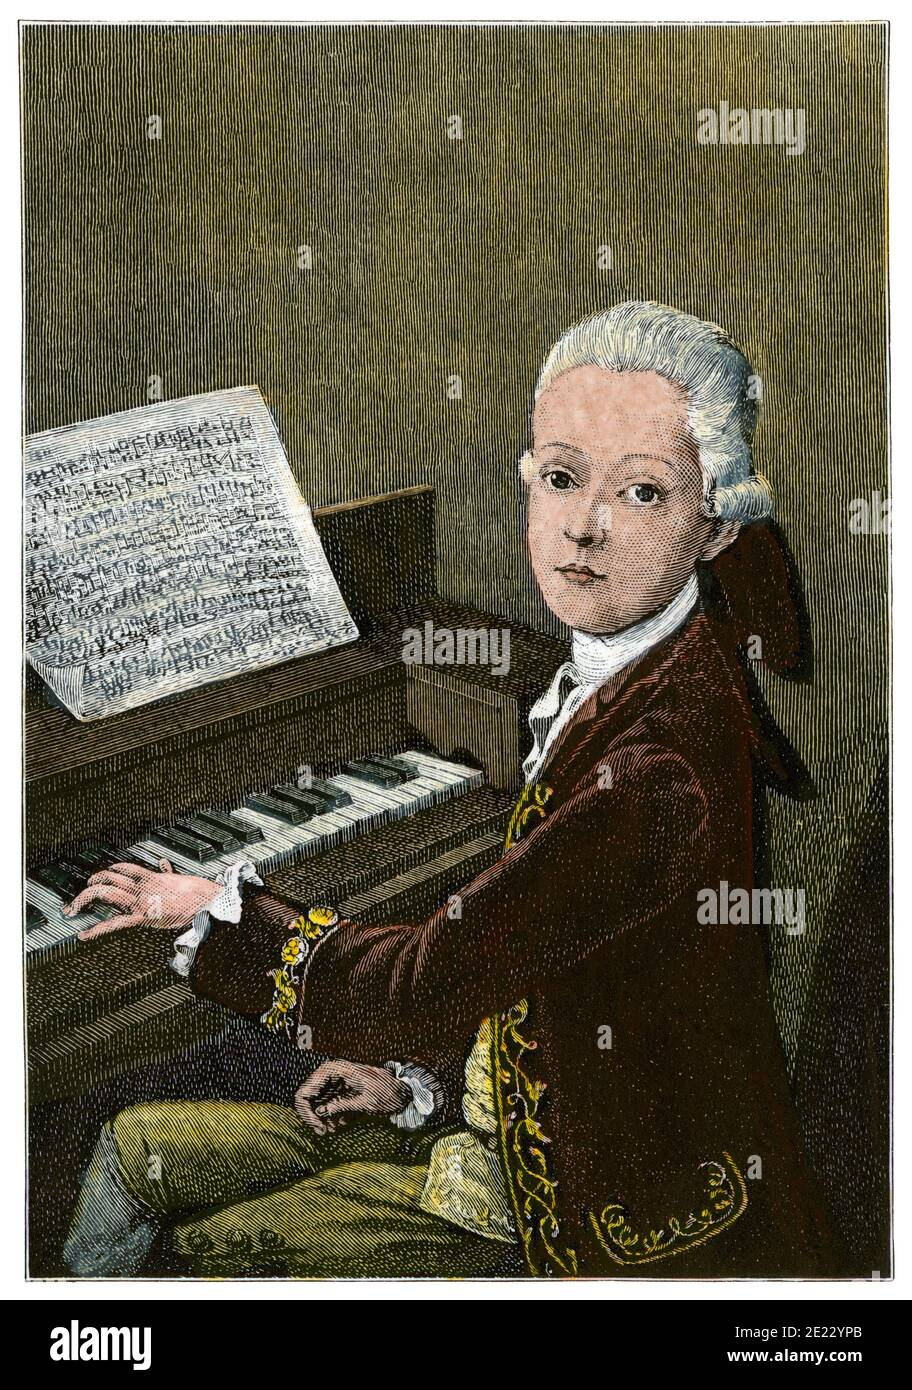 Mozart at age 9. Hand-colored woodcut Stock Photo